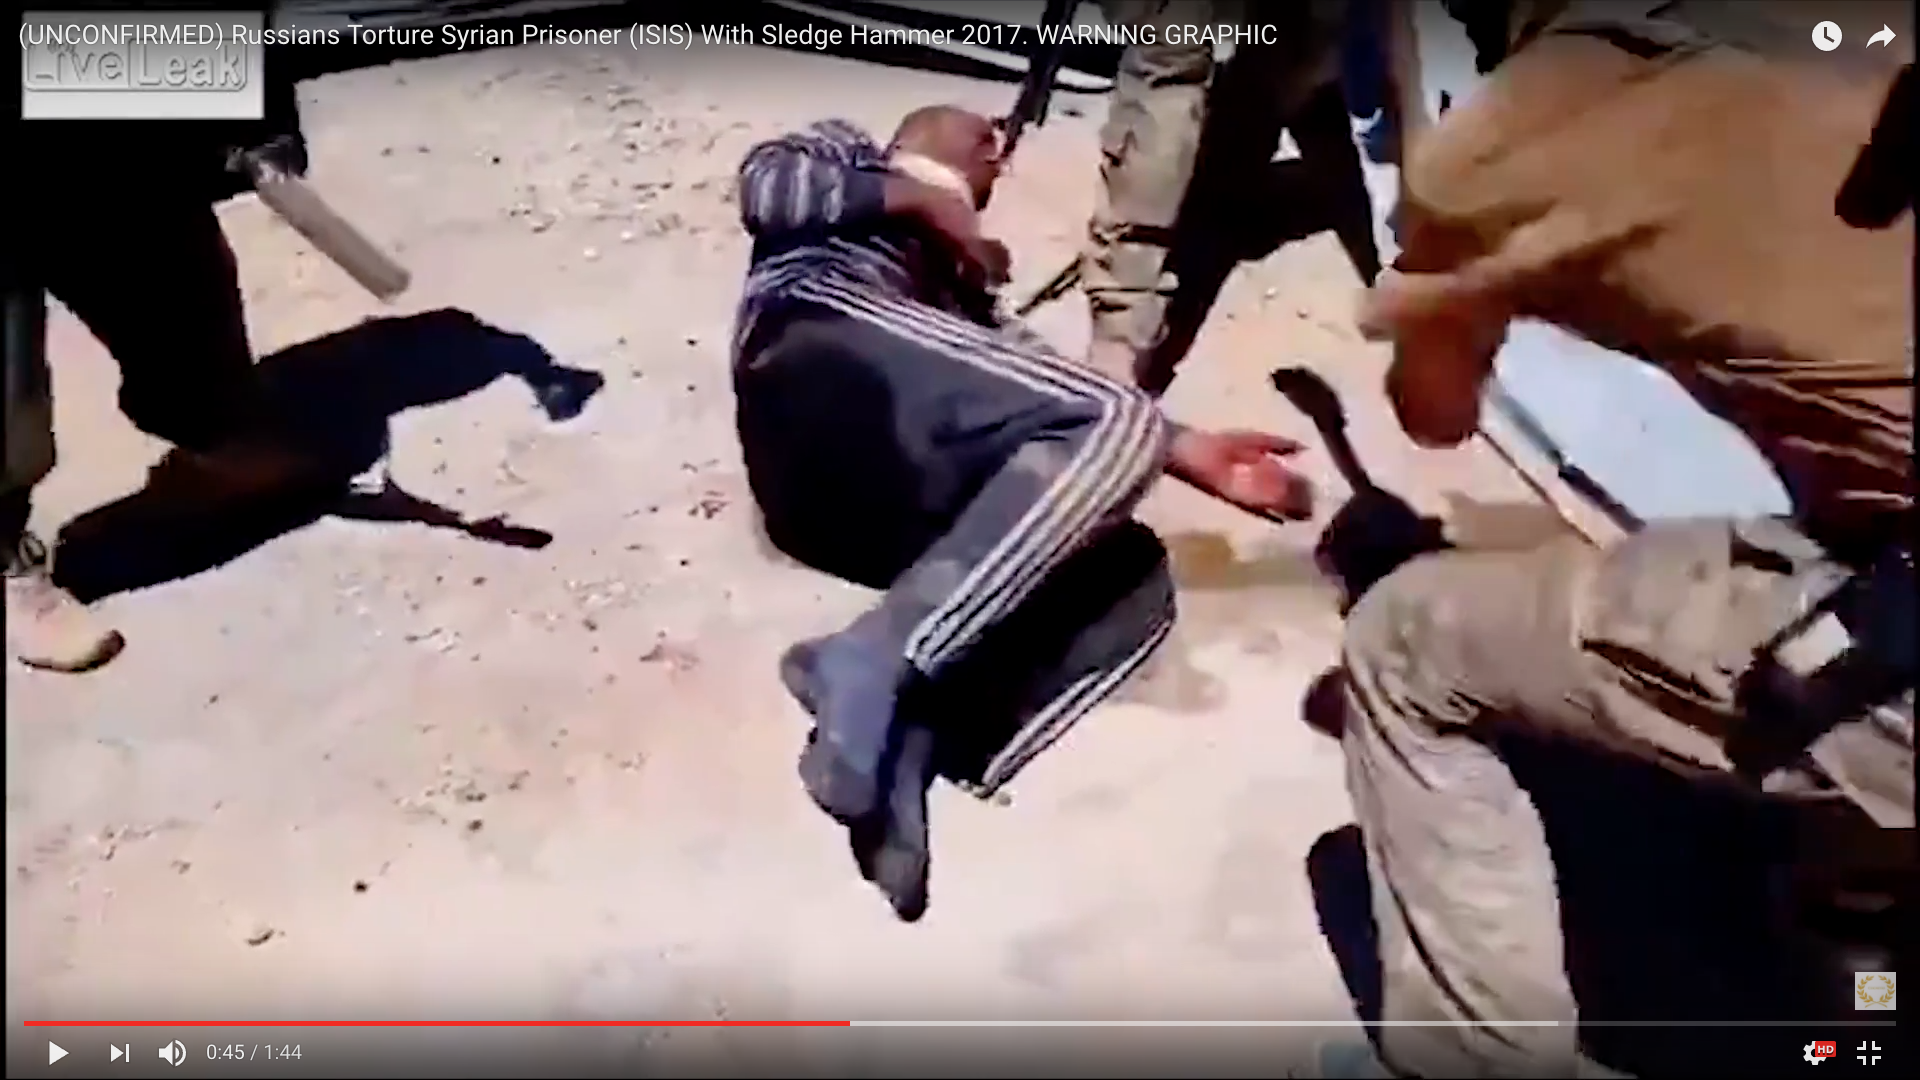 Russians Torture Syrian Prisoner With Sledge Hammer 2017 – To